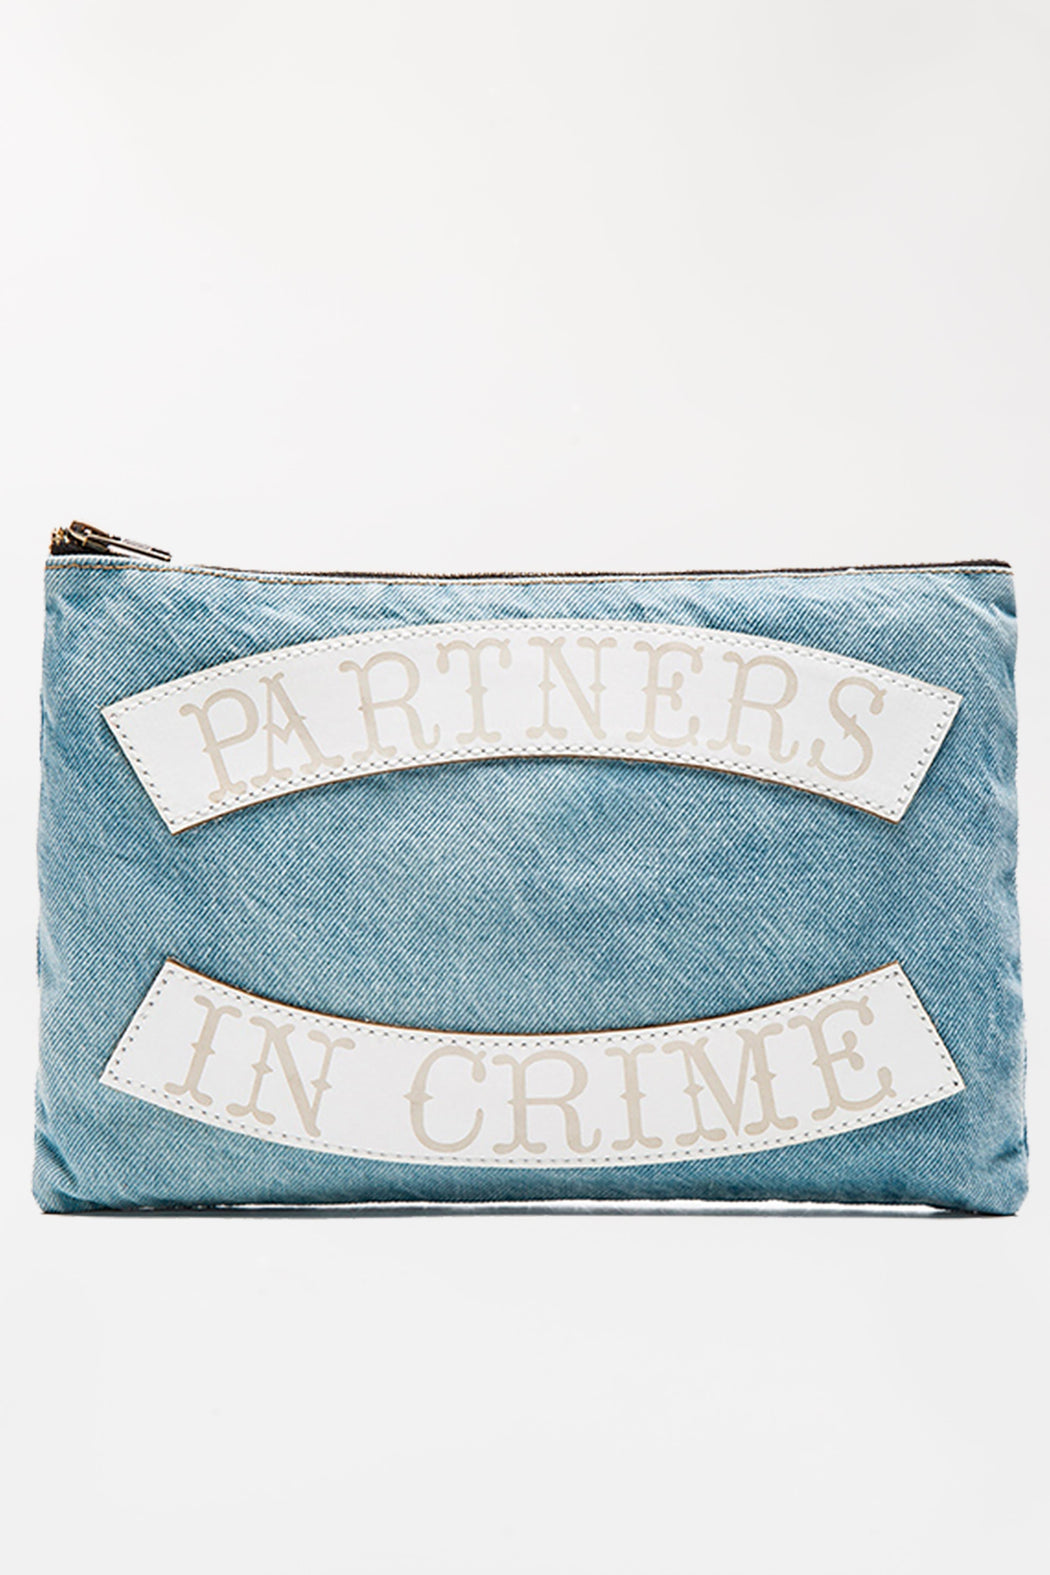 PARTNERS IN CRIME POUCH